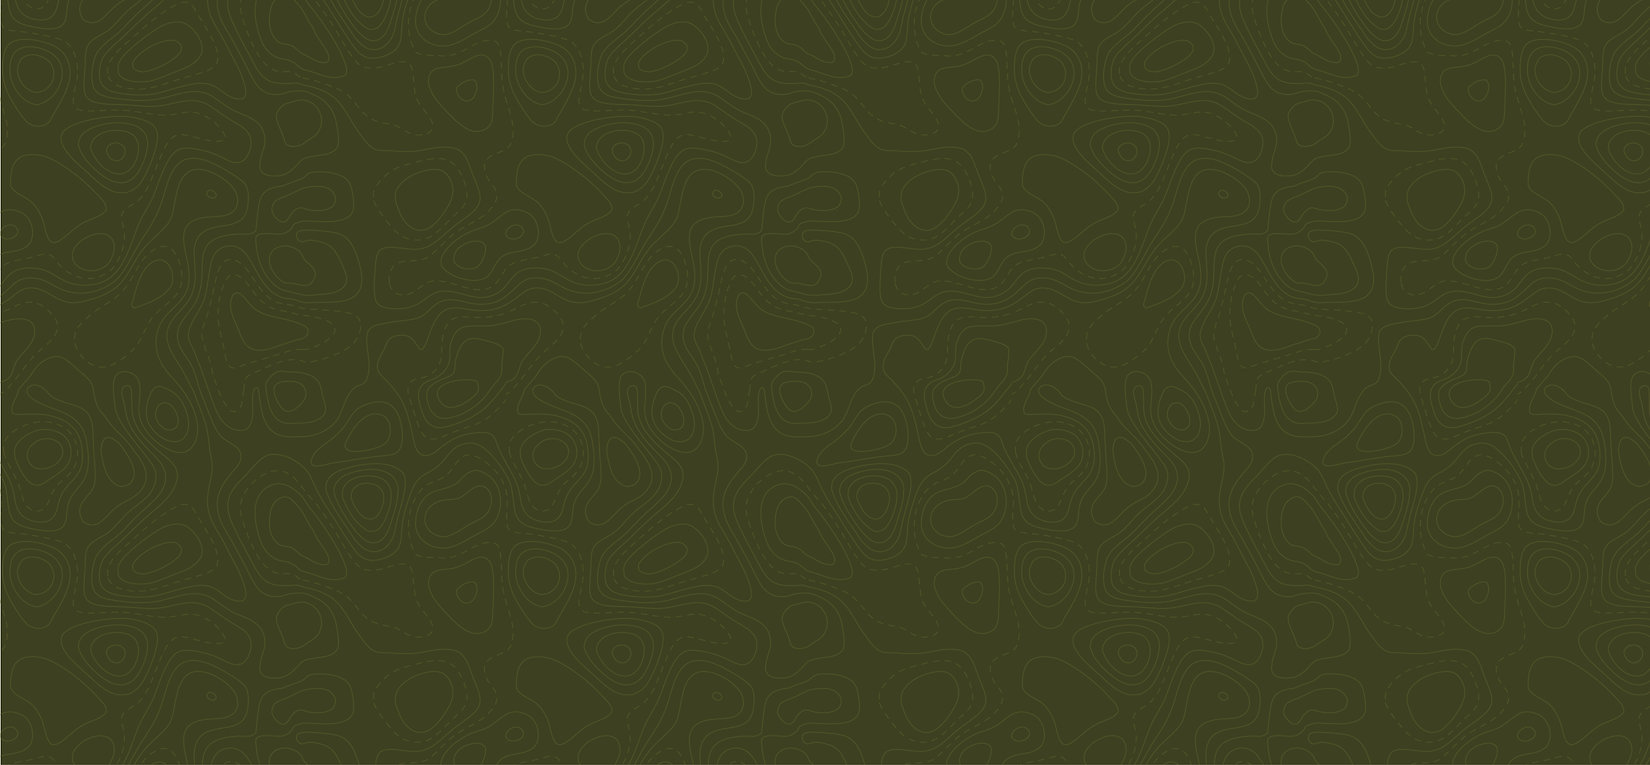 Dark Green Background-01.jpg